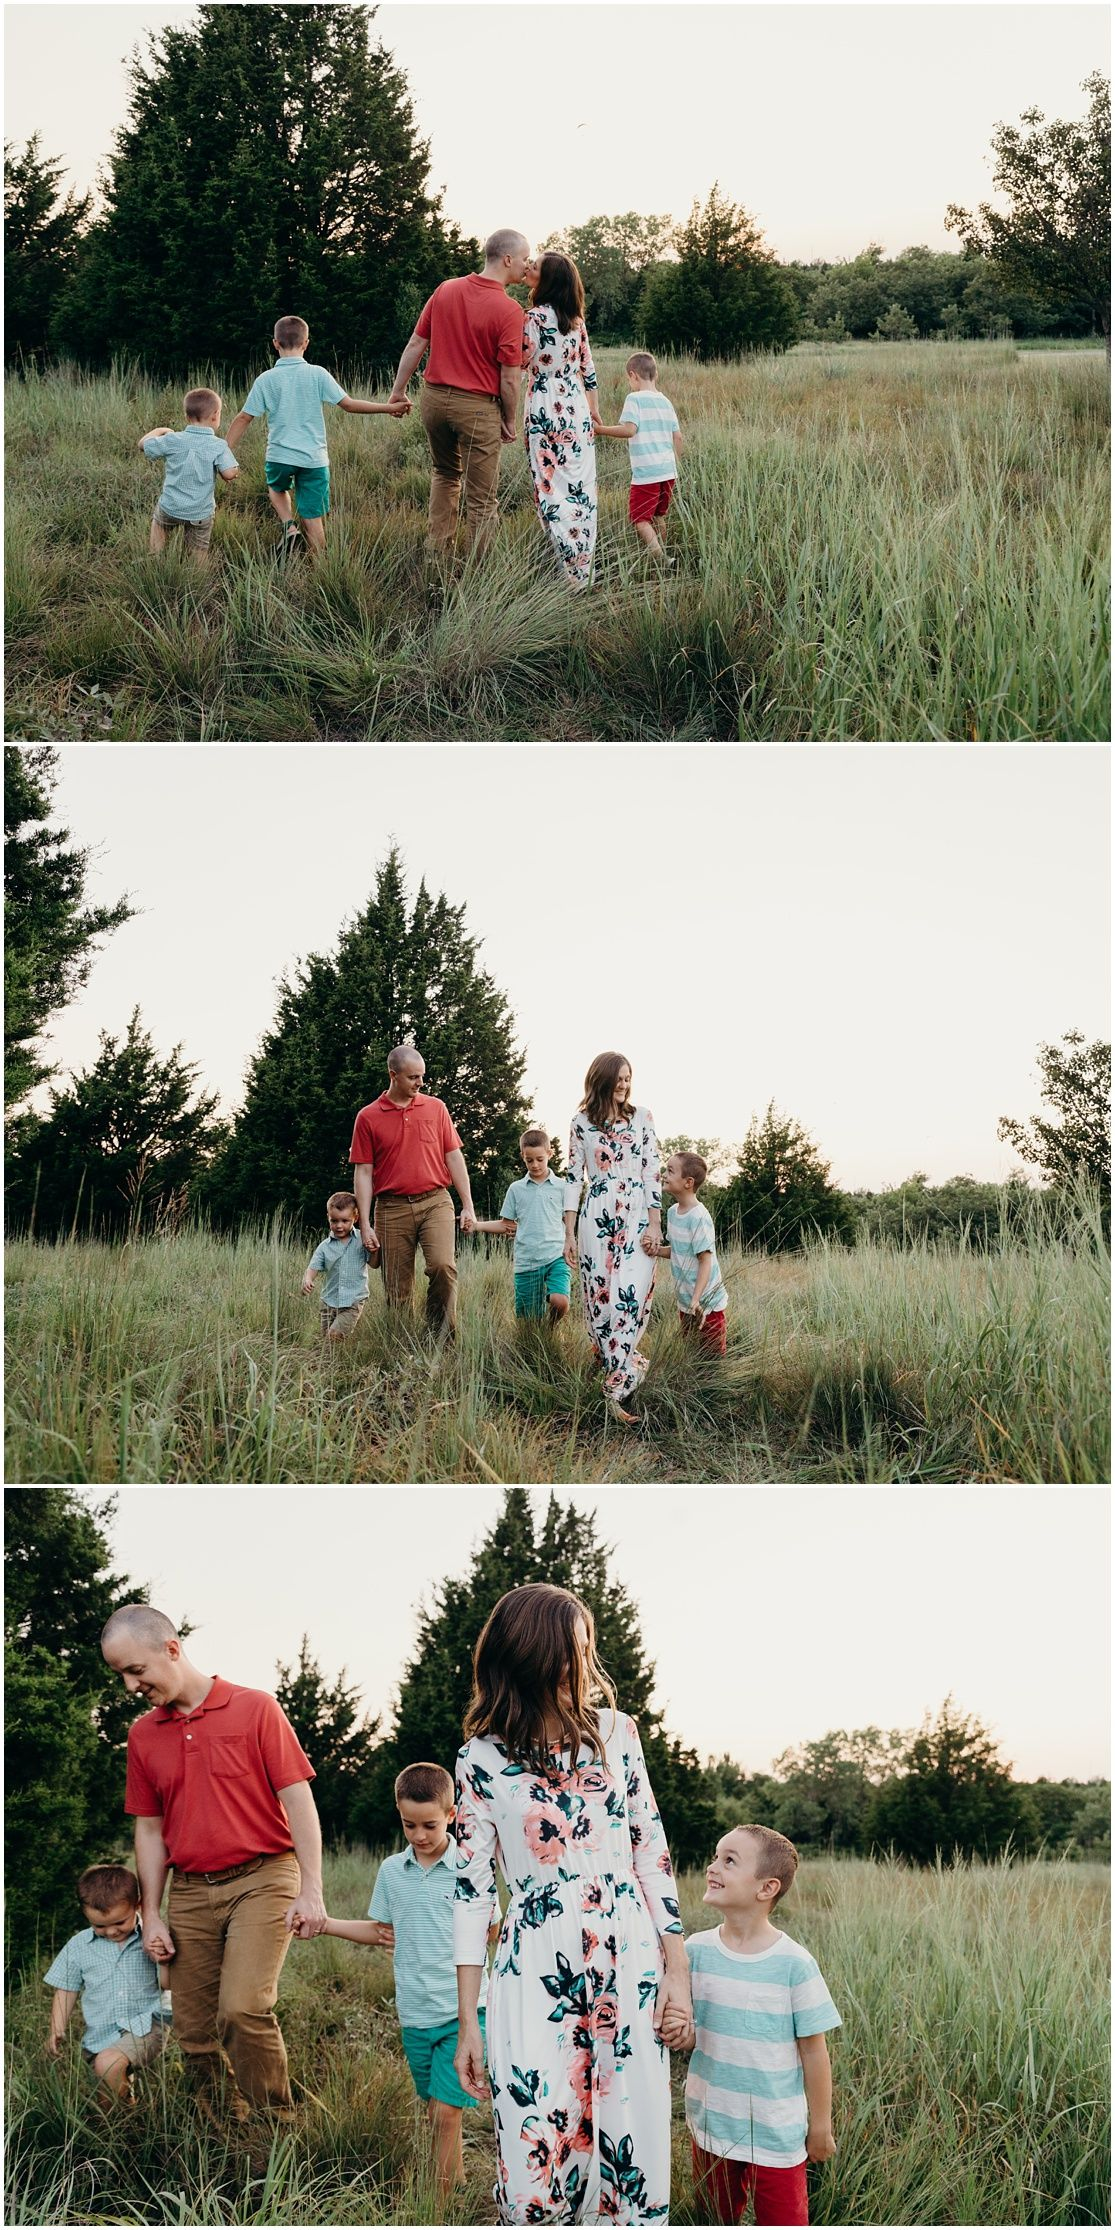 Family Holding Hands In Field Outdoor Lifestyle Photography By Melissa Harms Photography Edmond Ok Phot Lifestyle Photography Family Photographer Photography